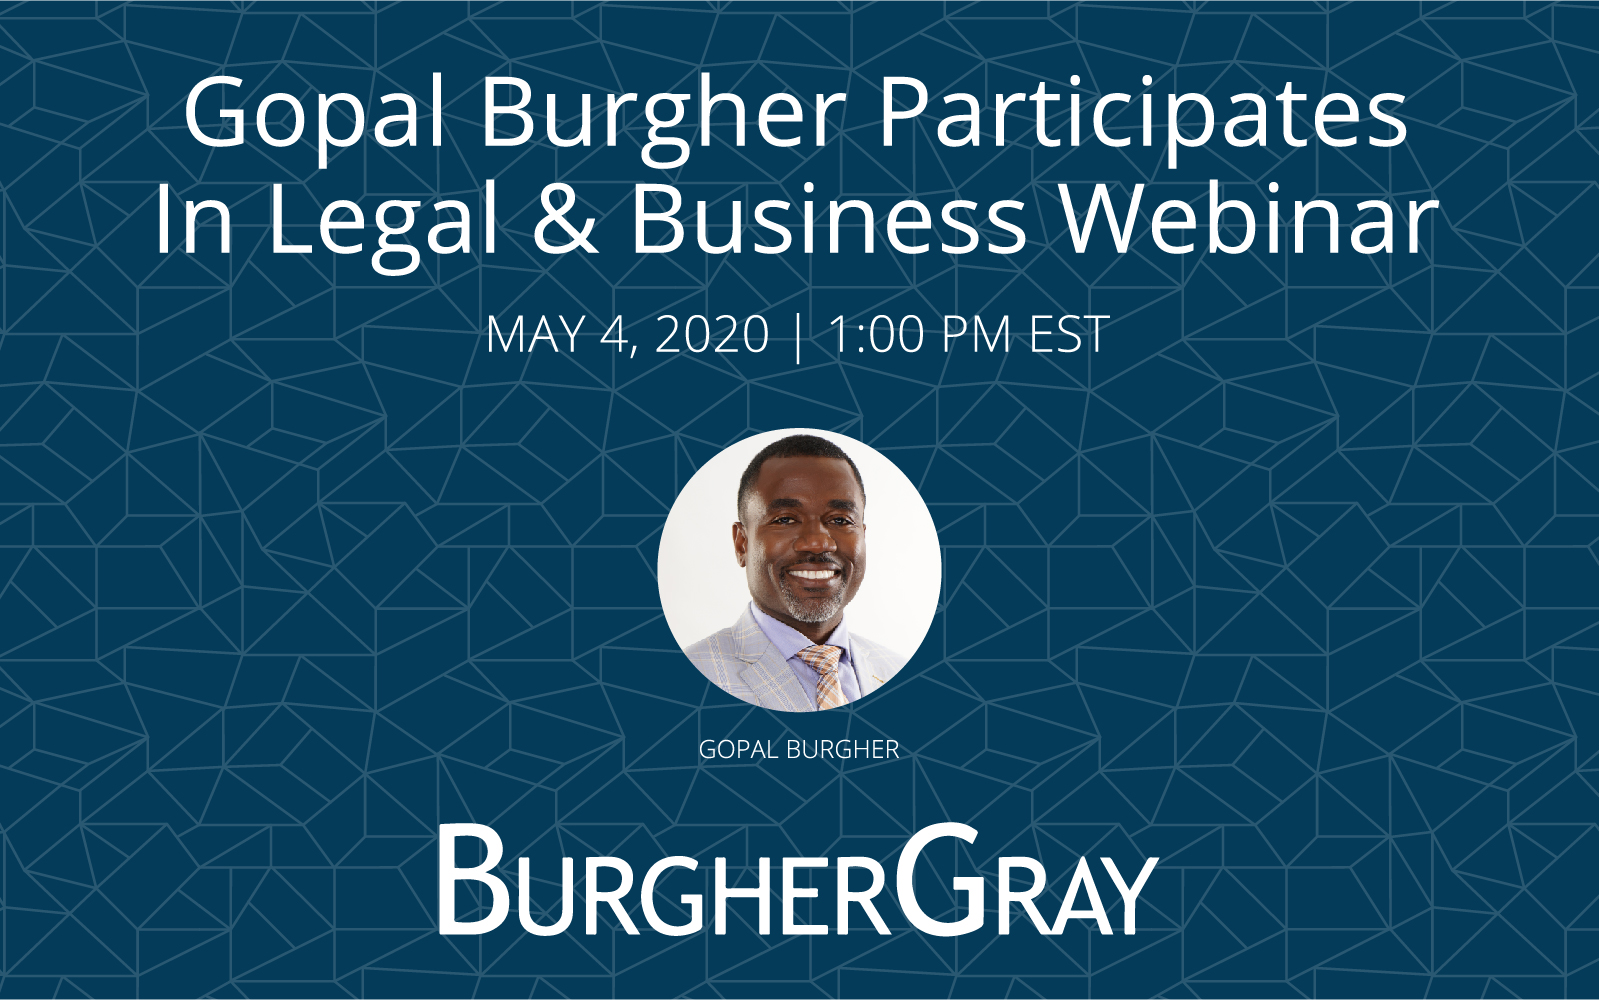 Gopal Burgher to participate in Legal & Business Webinar on May 4